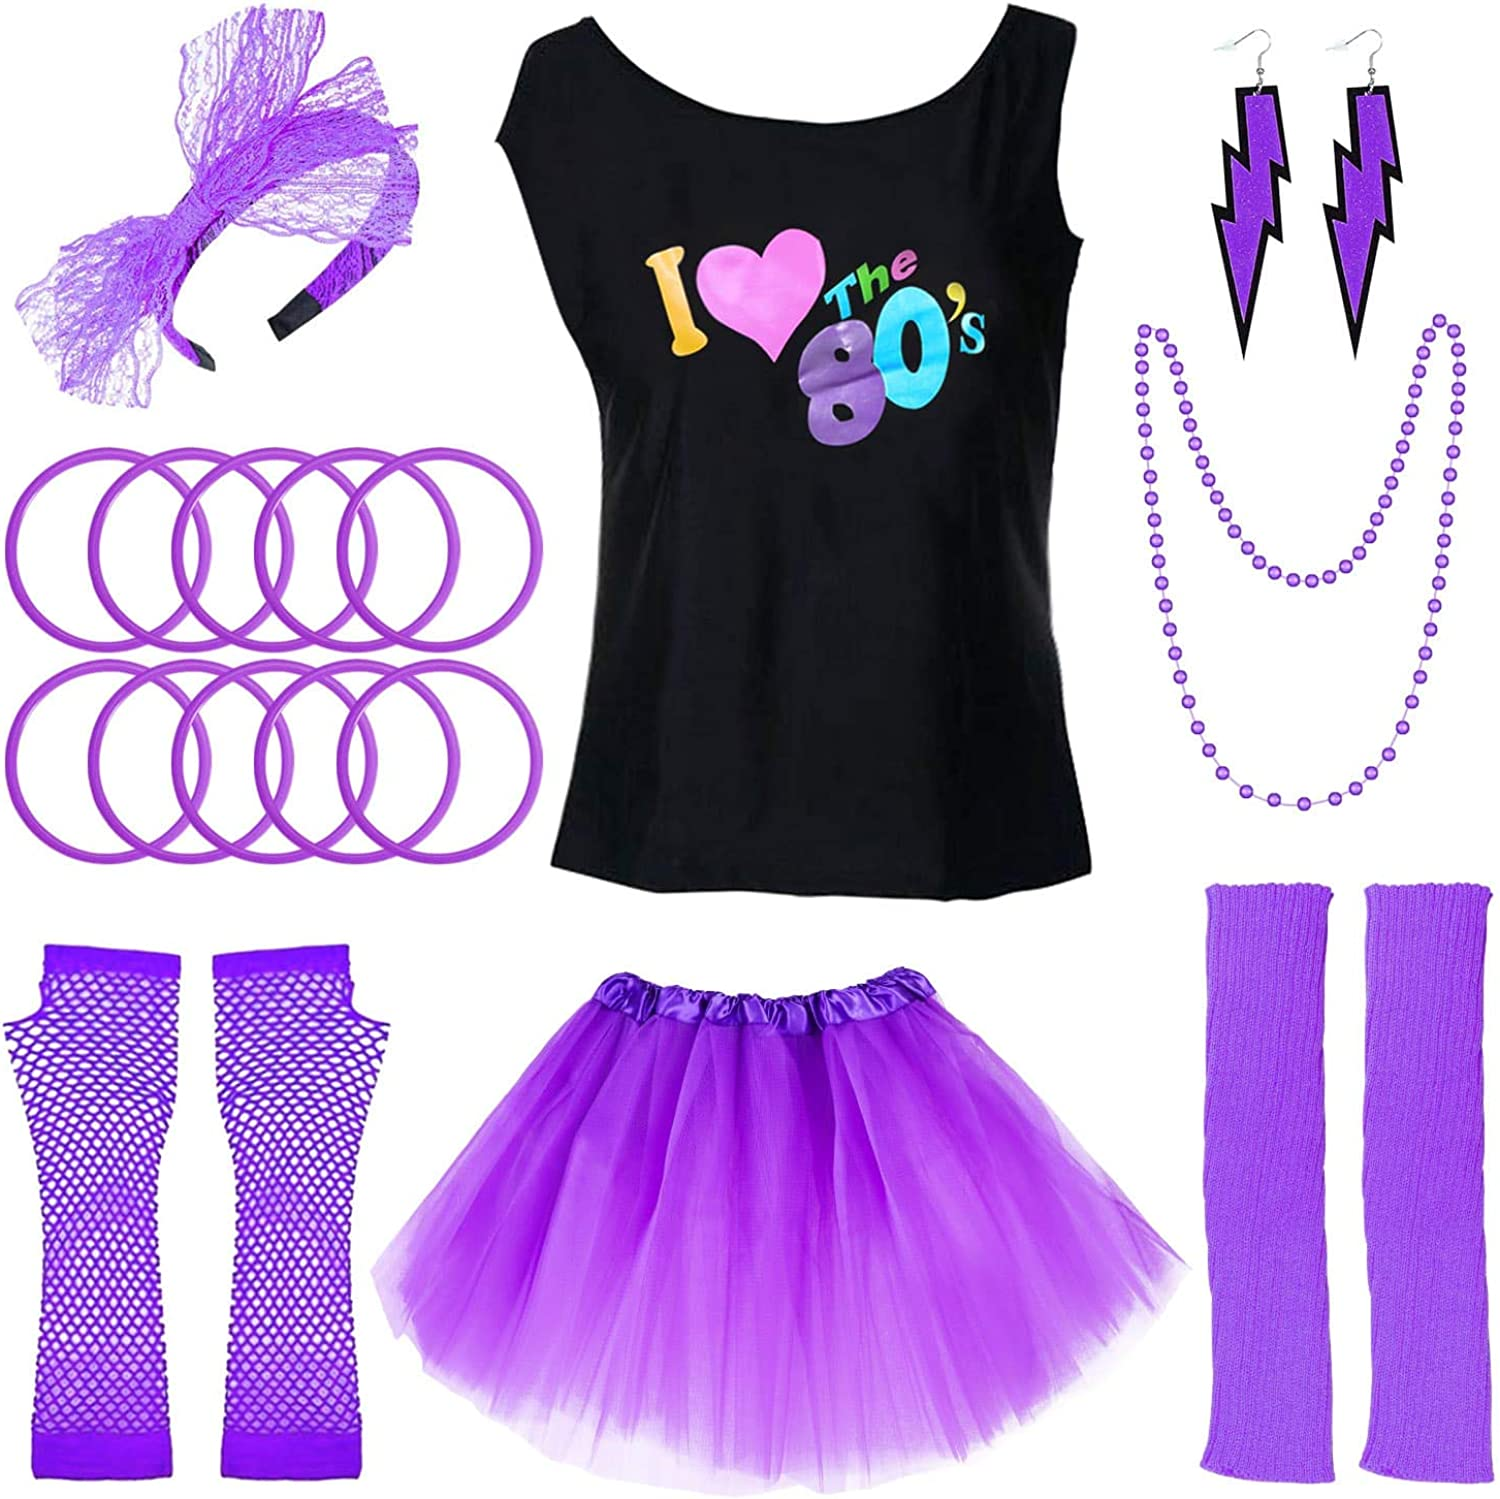 Jetec 80s Costume Accessories Set I Love 80s Skirt Necklace Bangle Leg Warmers Earrings Gloves T-Shirt for Party Accessory